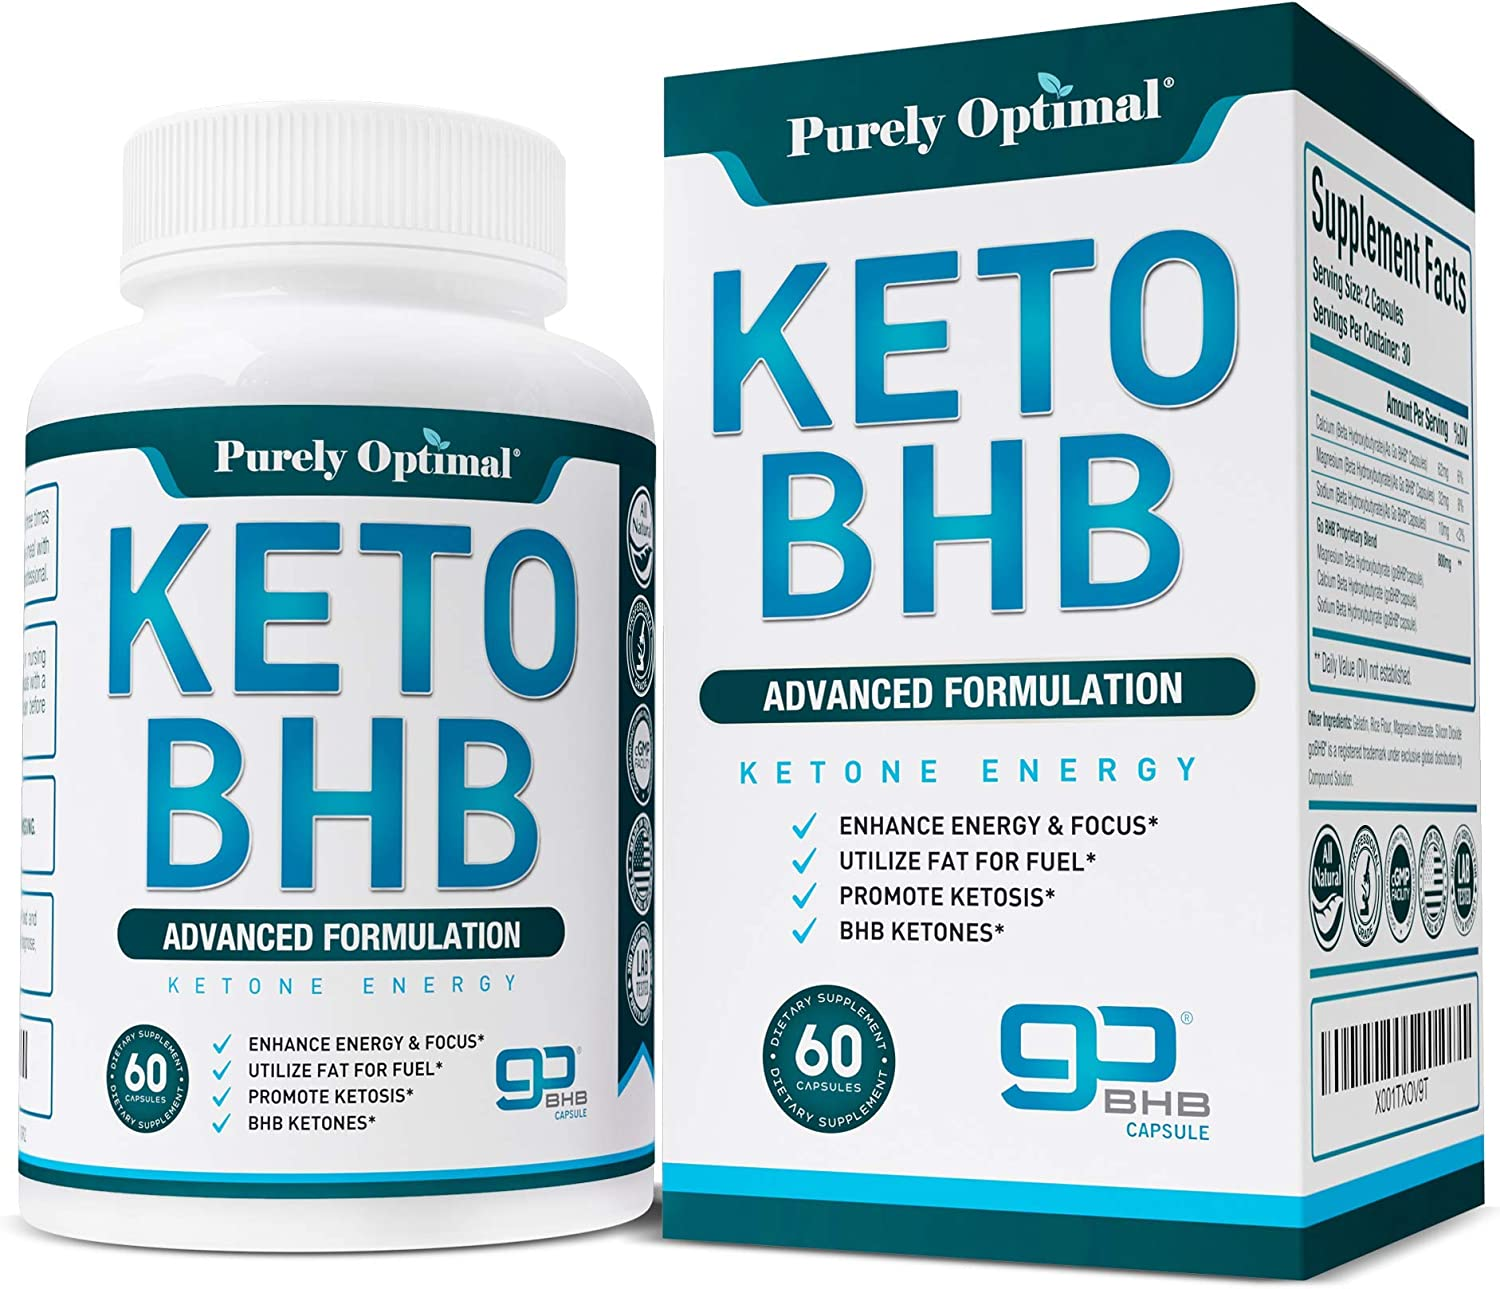 Amazon.com: Premium Keto Diet Pills - Utilize Fat for Energy with Ketosis -  Boost Energy & Focus - BHB Ketogenic Supplements for Women and Men - 30 Day  Supply: Health & Personal Care